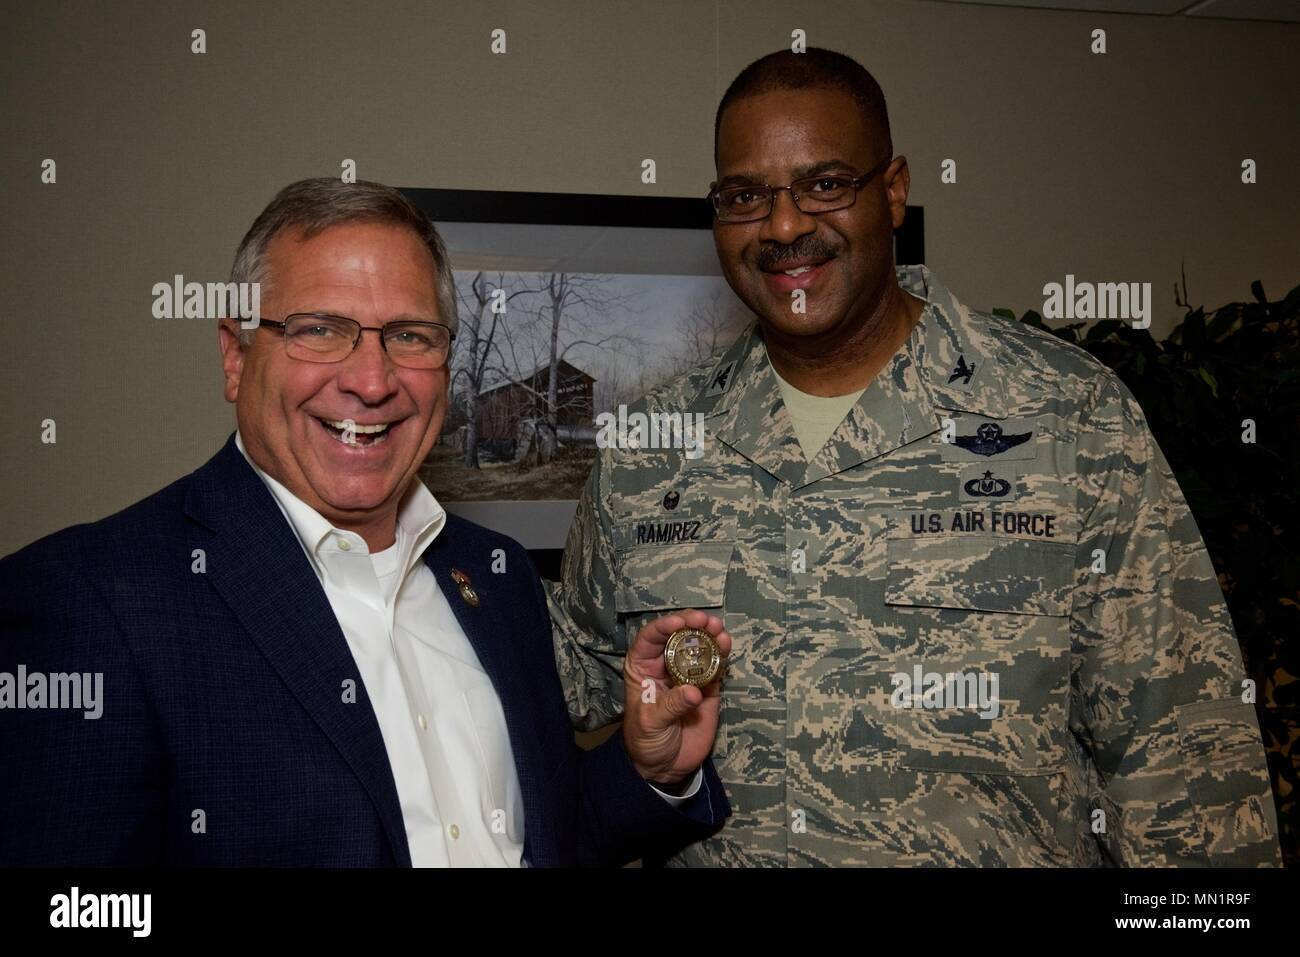 Congressman Mike Bost, representing the 12th district of Illinois, shows off the wing commanders's coin that Col. Esteban Ramirez, commander, 932nd Airlift Wing presented during Bost's visit Aug. 5, 2017, Scott Air Force Base, Illinois.   (U.S. Air Force photo by Tech. Sgt. Christopher Parr) - Stock Image